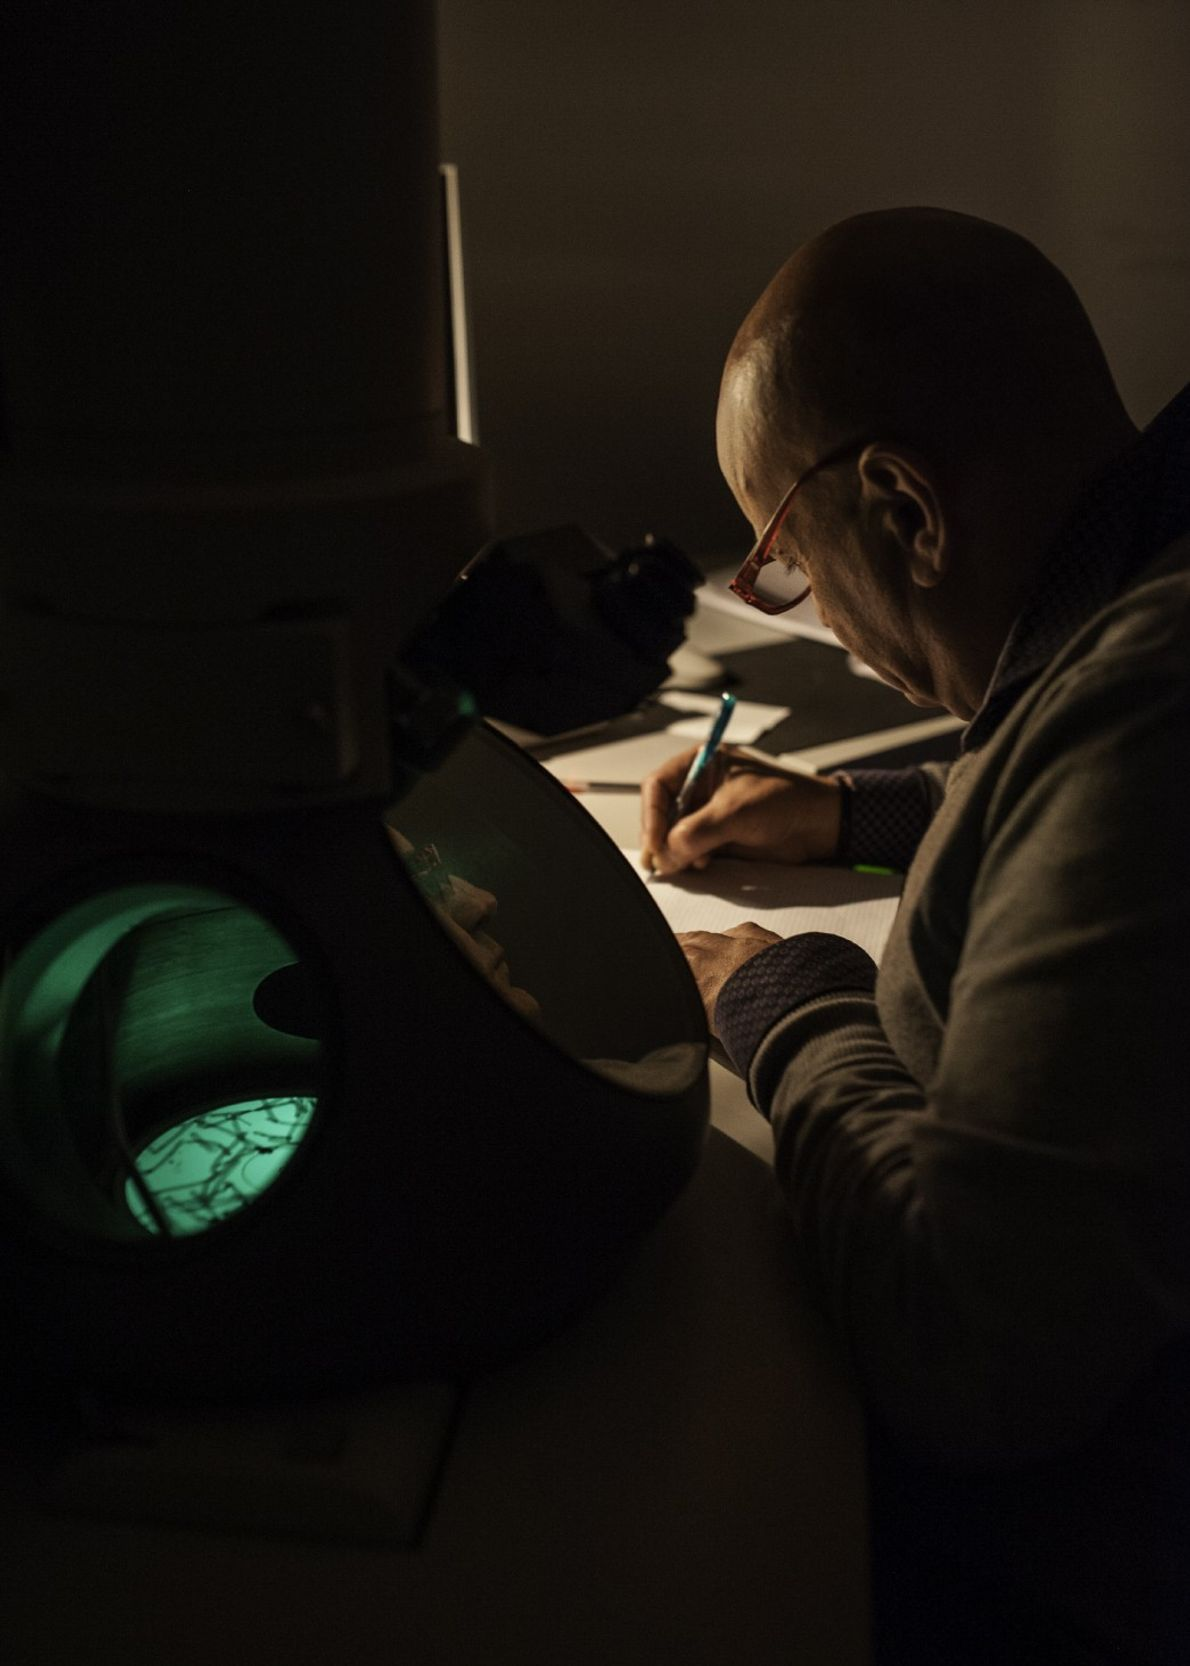 Angelo De Stradis, a scientist at the Italian National Research Centre (CNR) in Bari, uses a ...